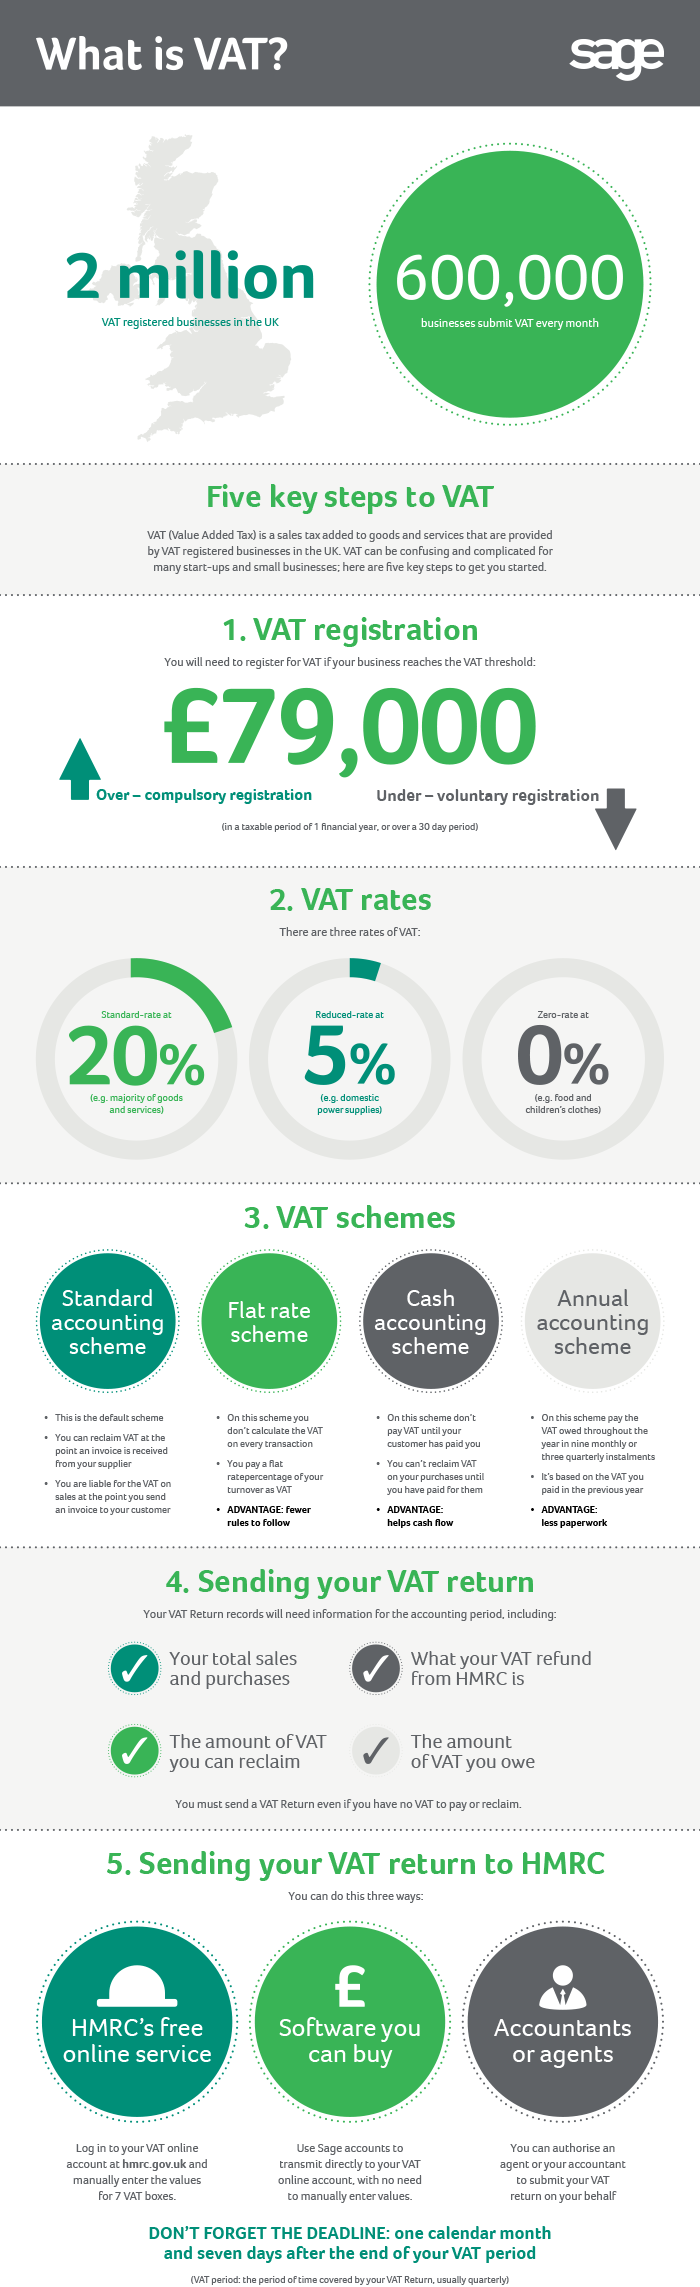 Sage - What is VAT? infographic